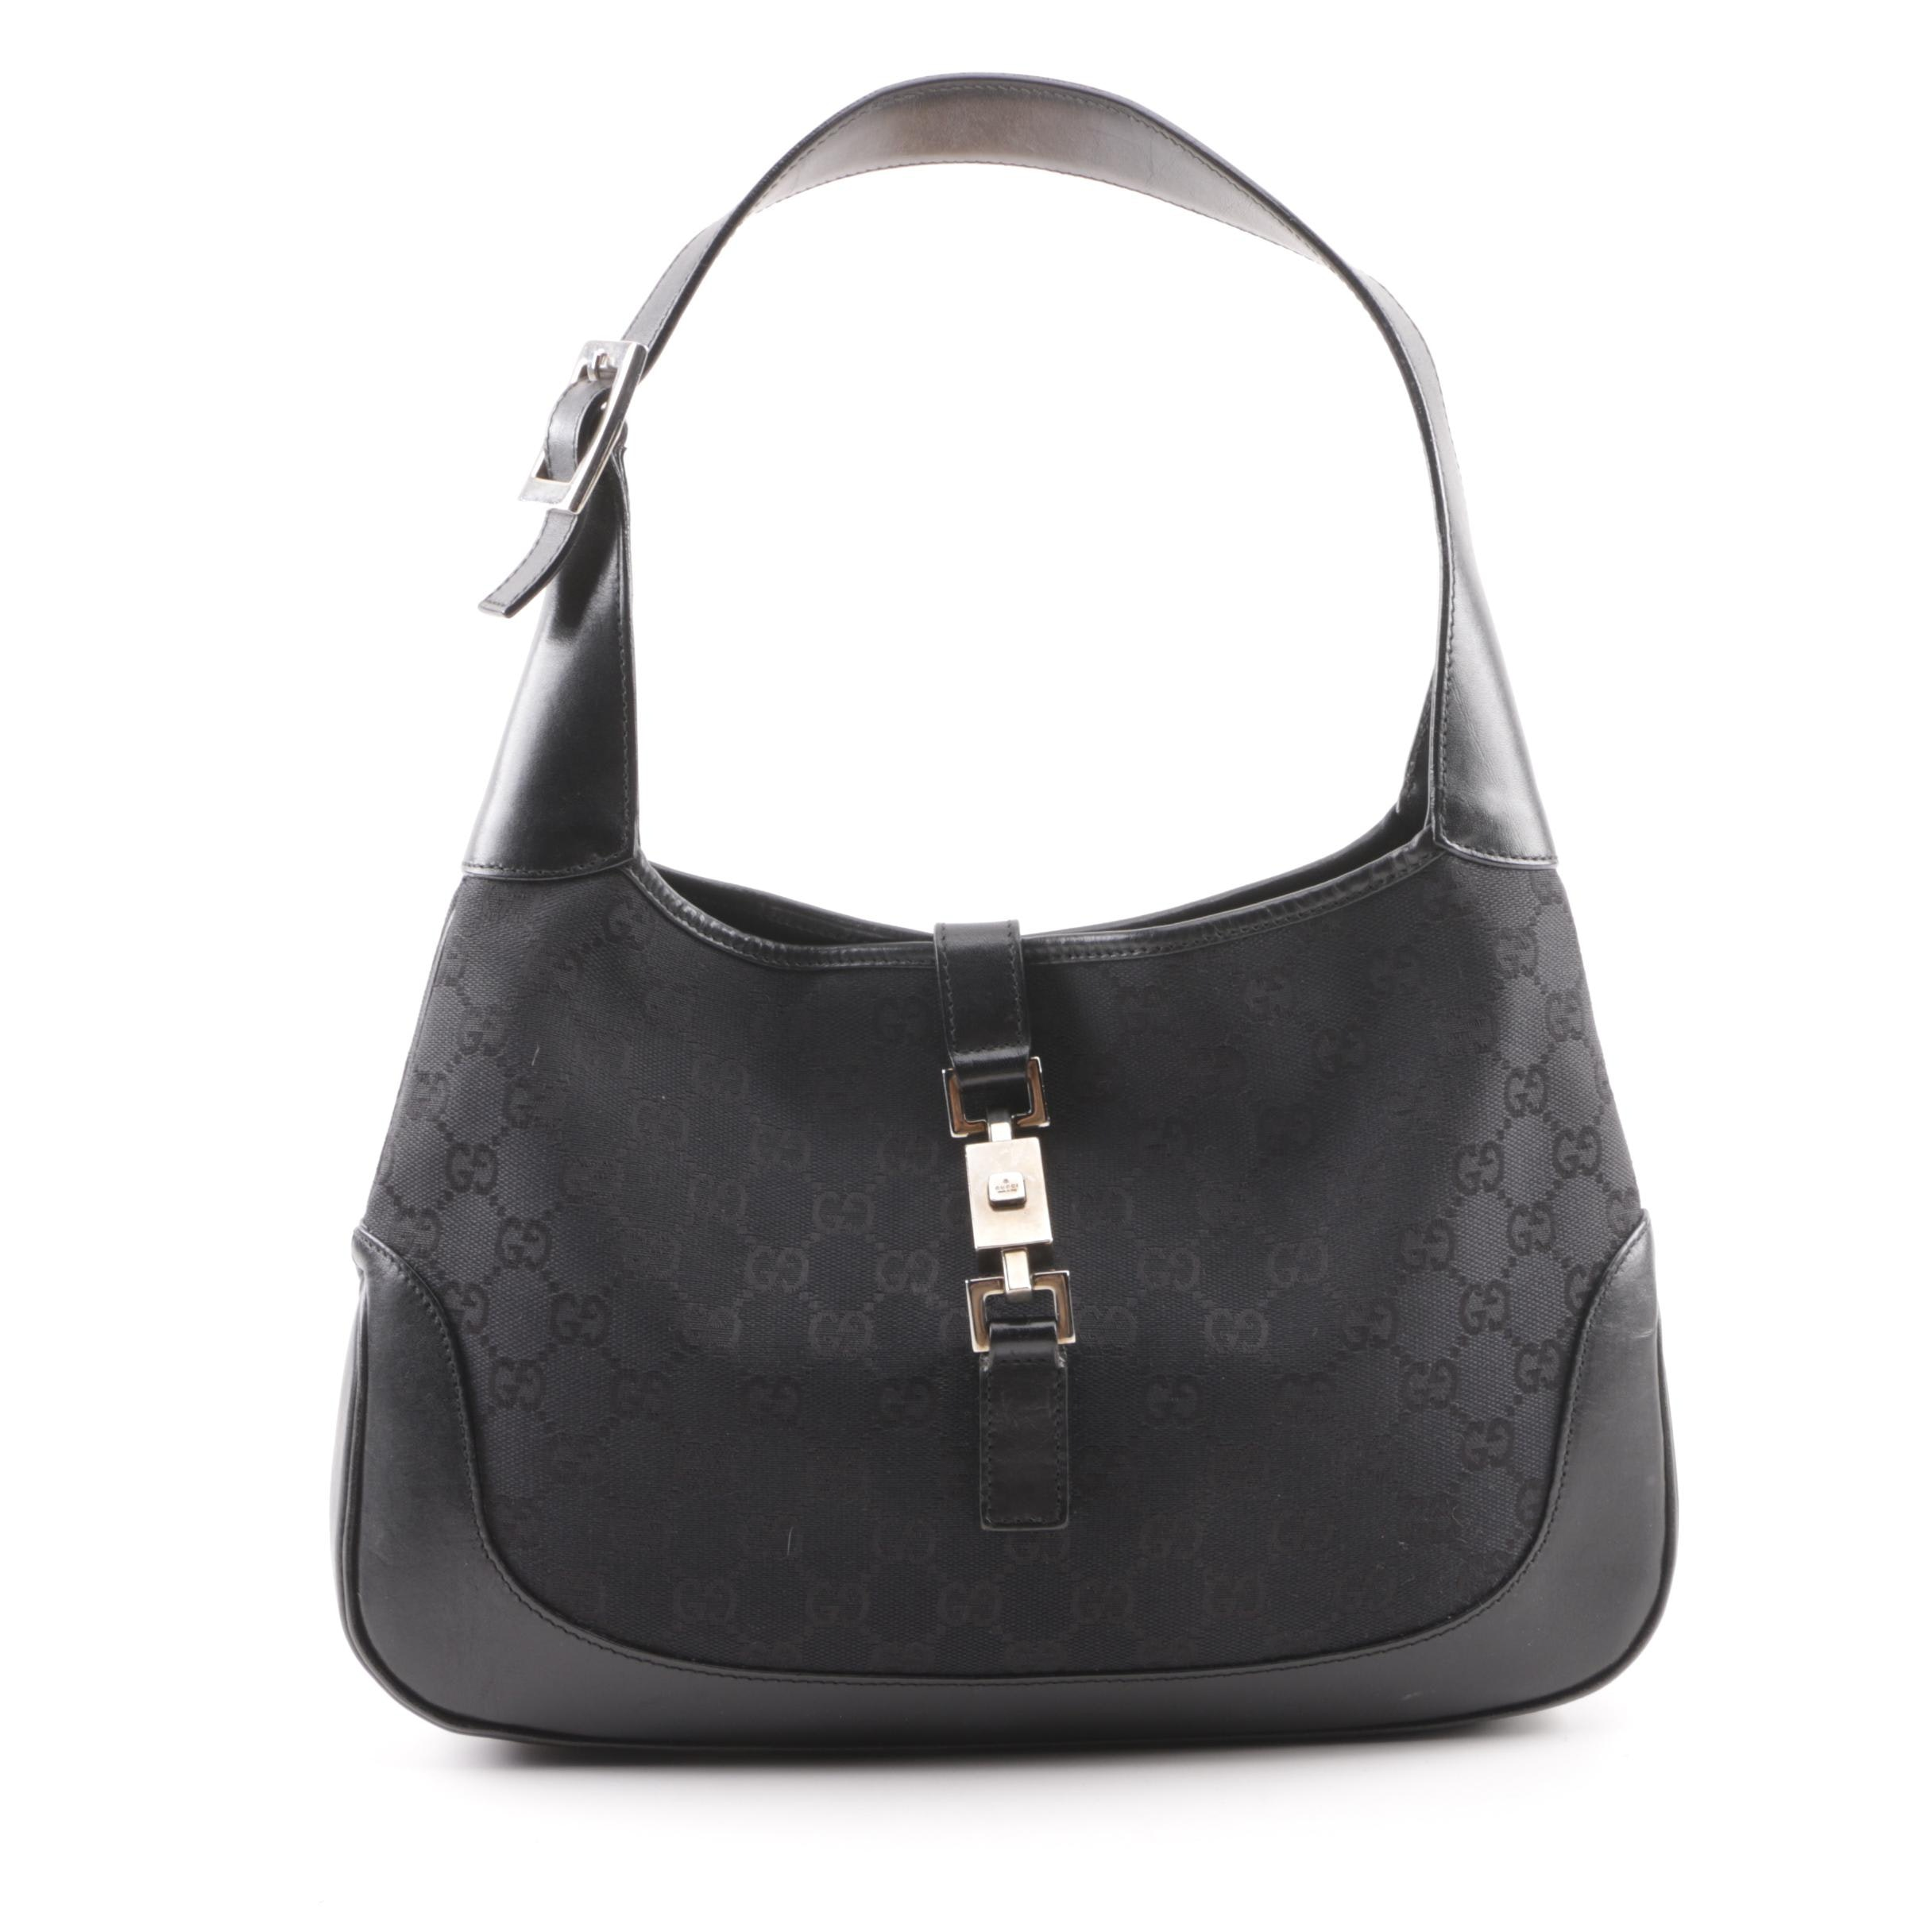 Gucci Jackie O Black GG Canvas and Leather Small Hobo Bag